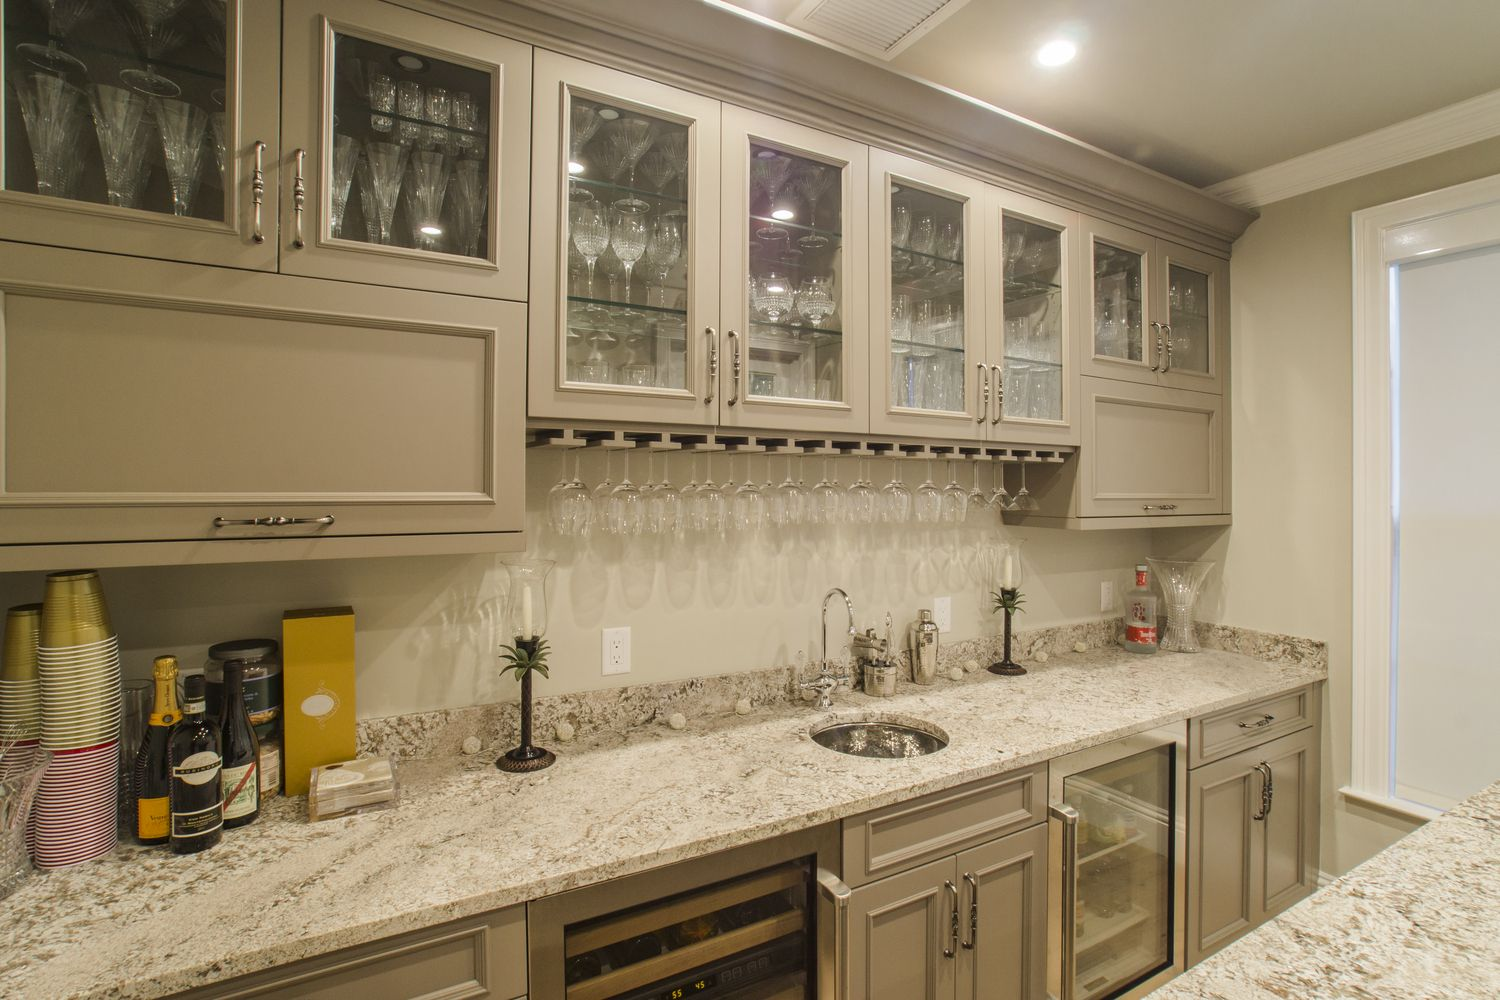 Shoreline Holdings Llc Serves Naples Marco Island And Bonita Springs We Are A Design Build Construction Residential Remodel Gorgeous Kitchens Outdoor Kitchen